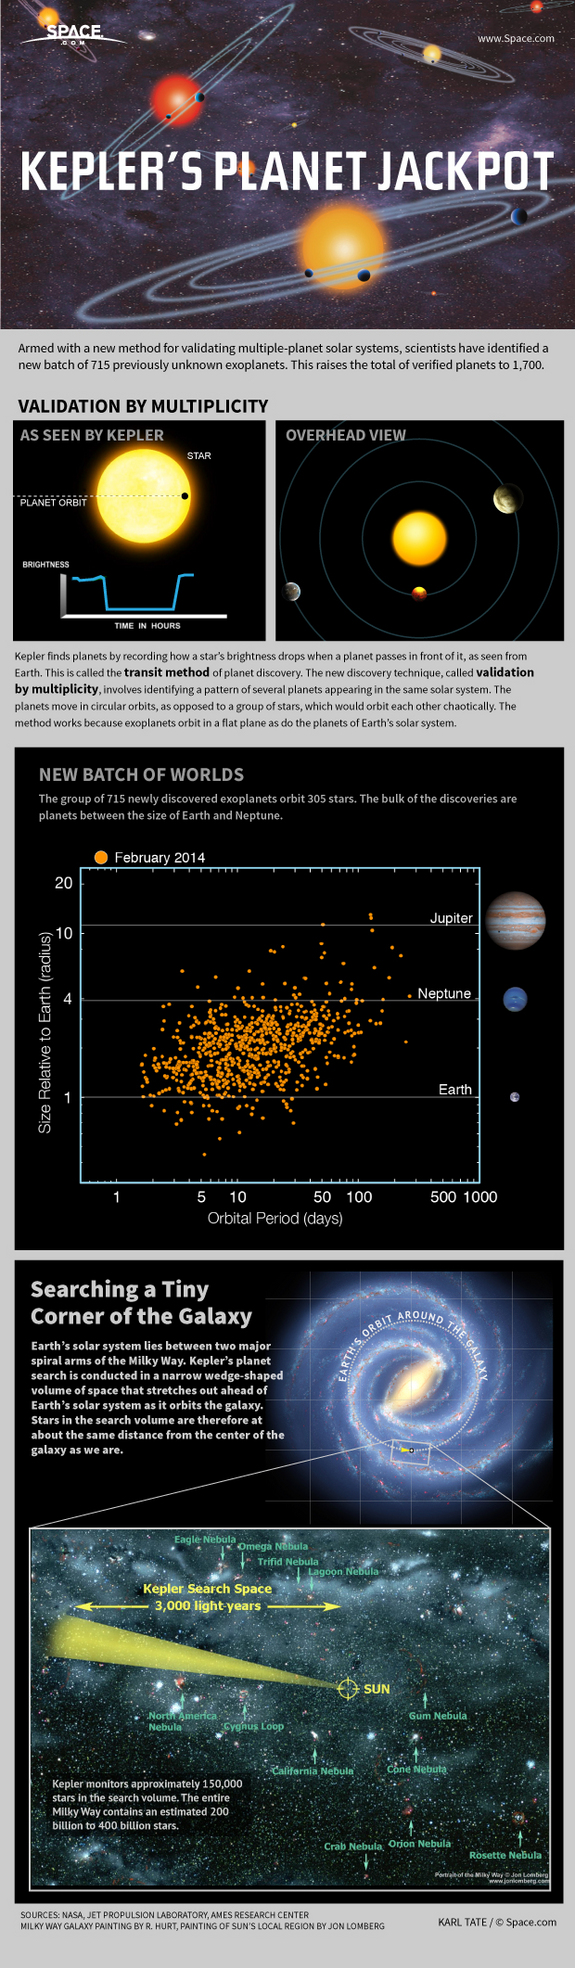 "A powerful new technique for hunting alien planets yields a major new crop of new worlds. [<a href=""http://www.space.com/24827-kepler-space-telescope-exoplanet-bonanza-explained-infographic.html"">See how Kepler made the planet discoveries in this Space.com infographic</a>]"